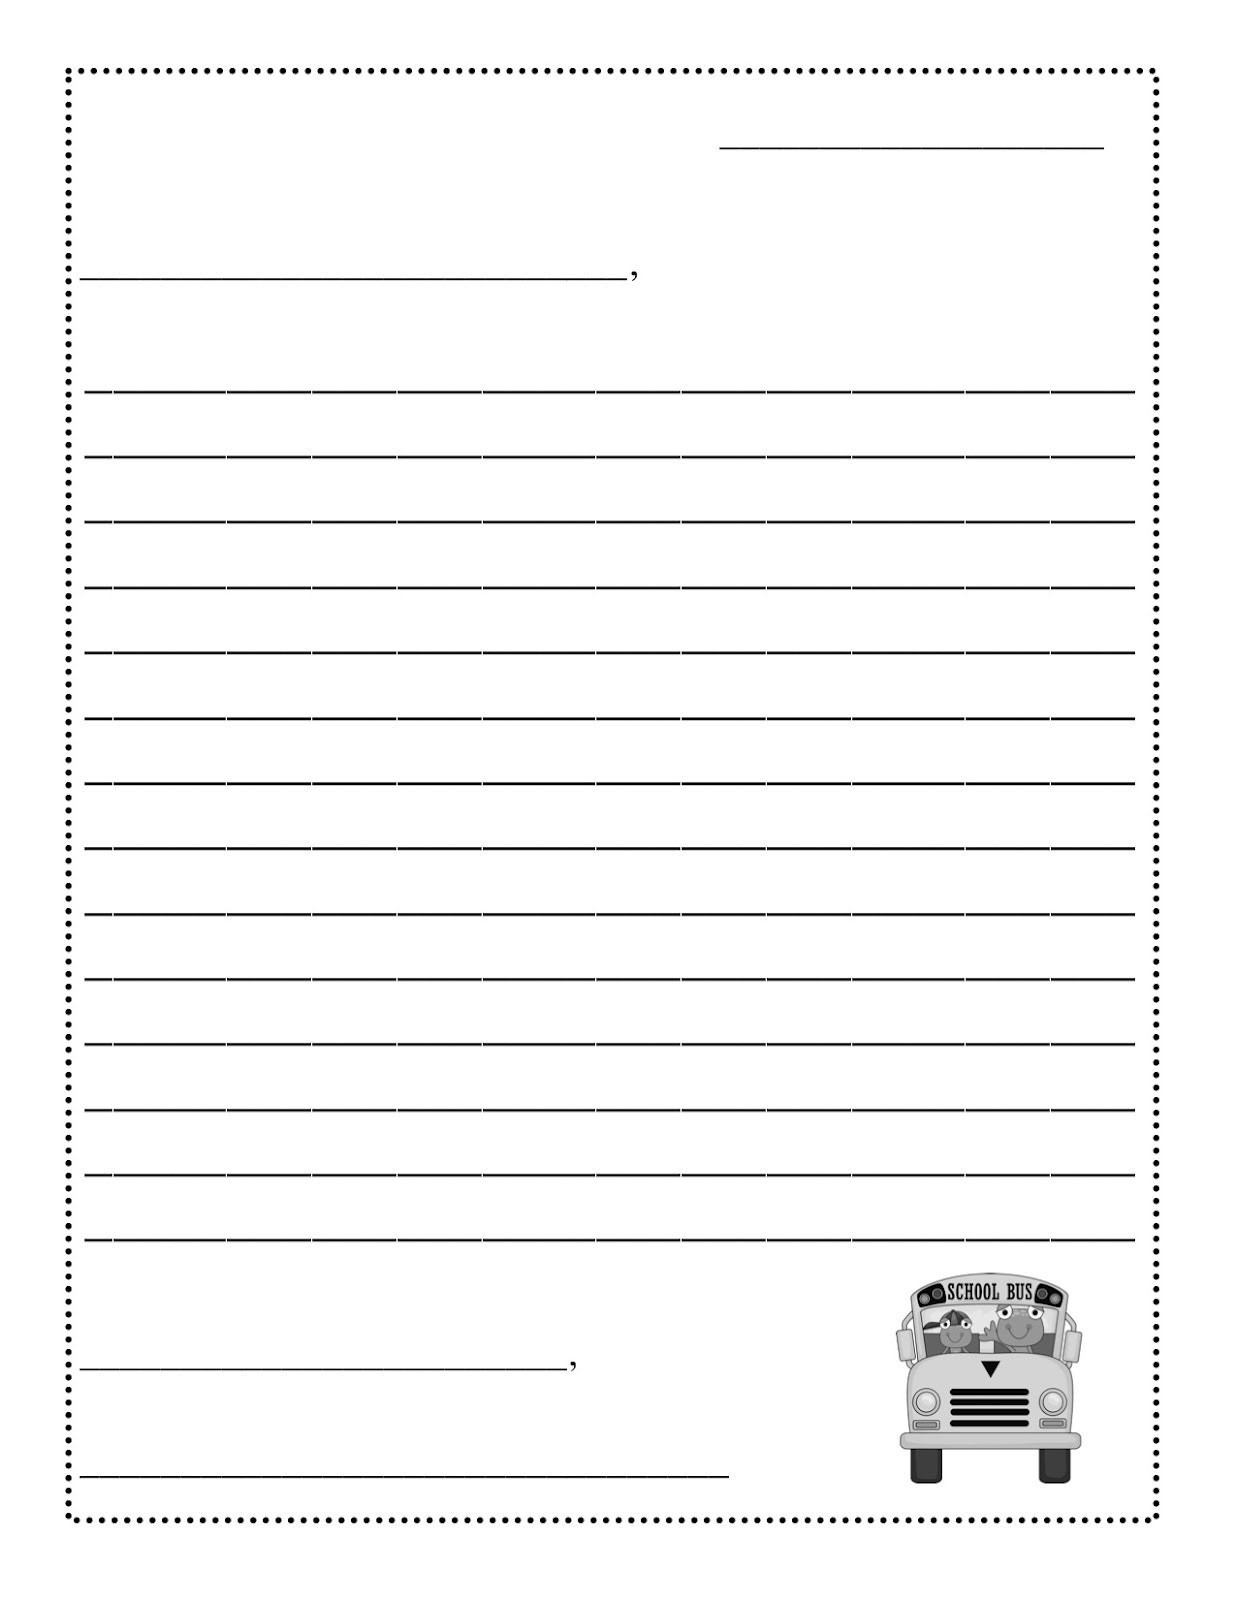 Template Ideas Free Letter Writing Blank Forudents Valid Pertaining To Blank Letter Writing Template For Kids